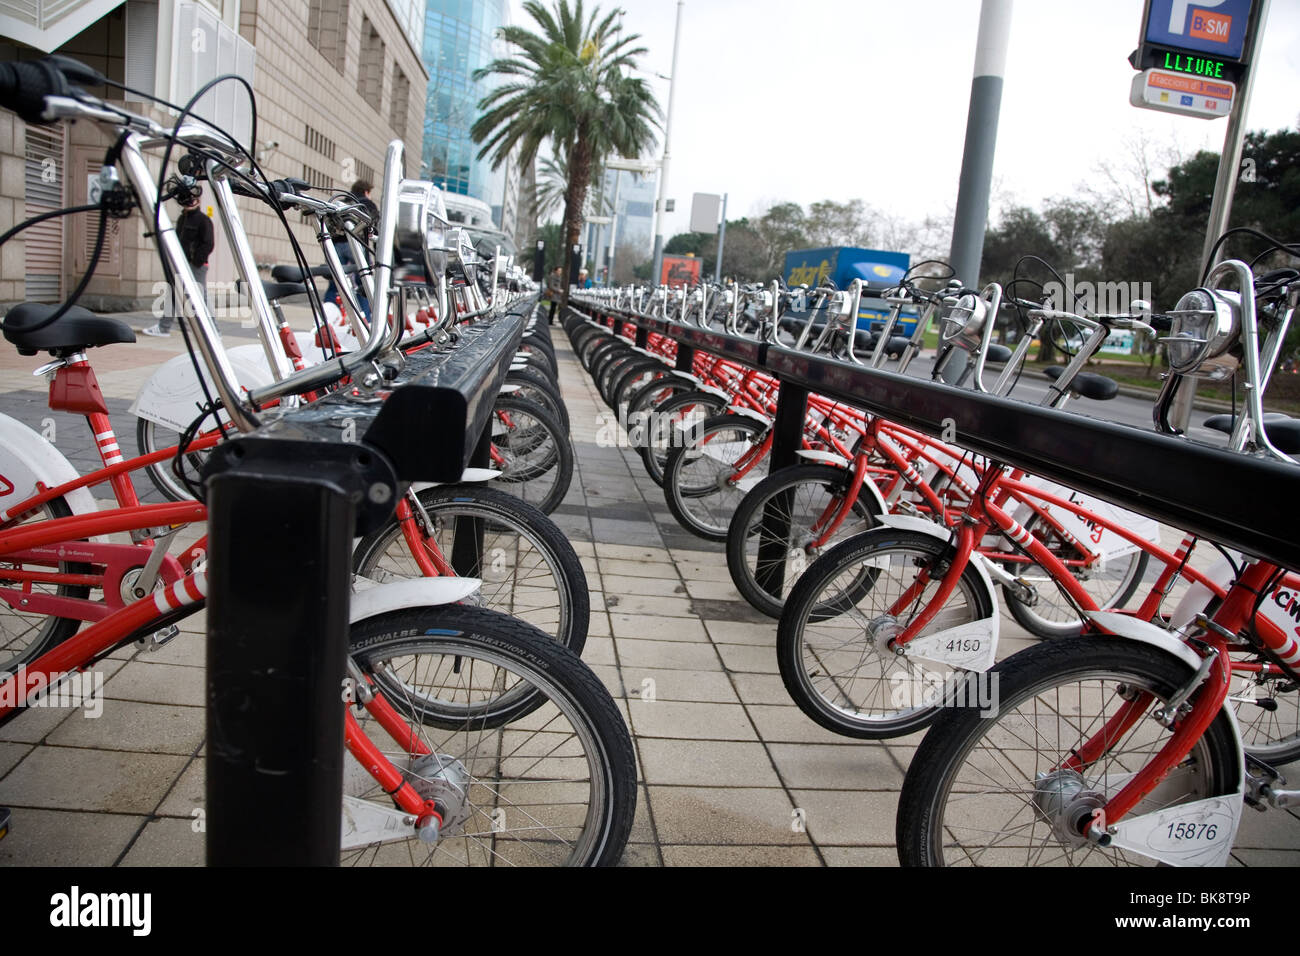 Bicing - community Bicycle programin Barcelona - Stock Image